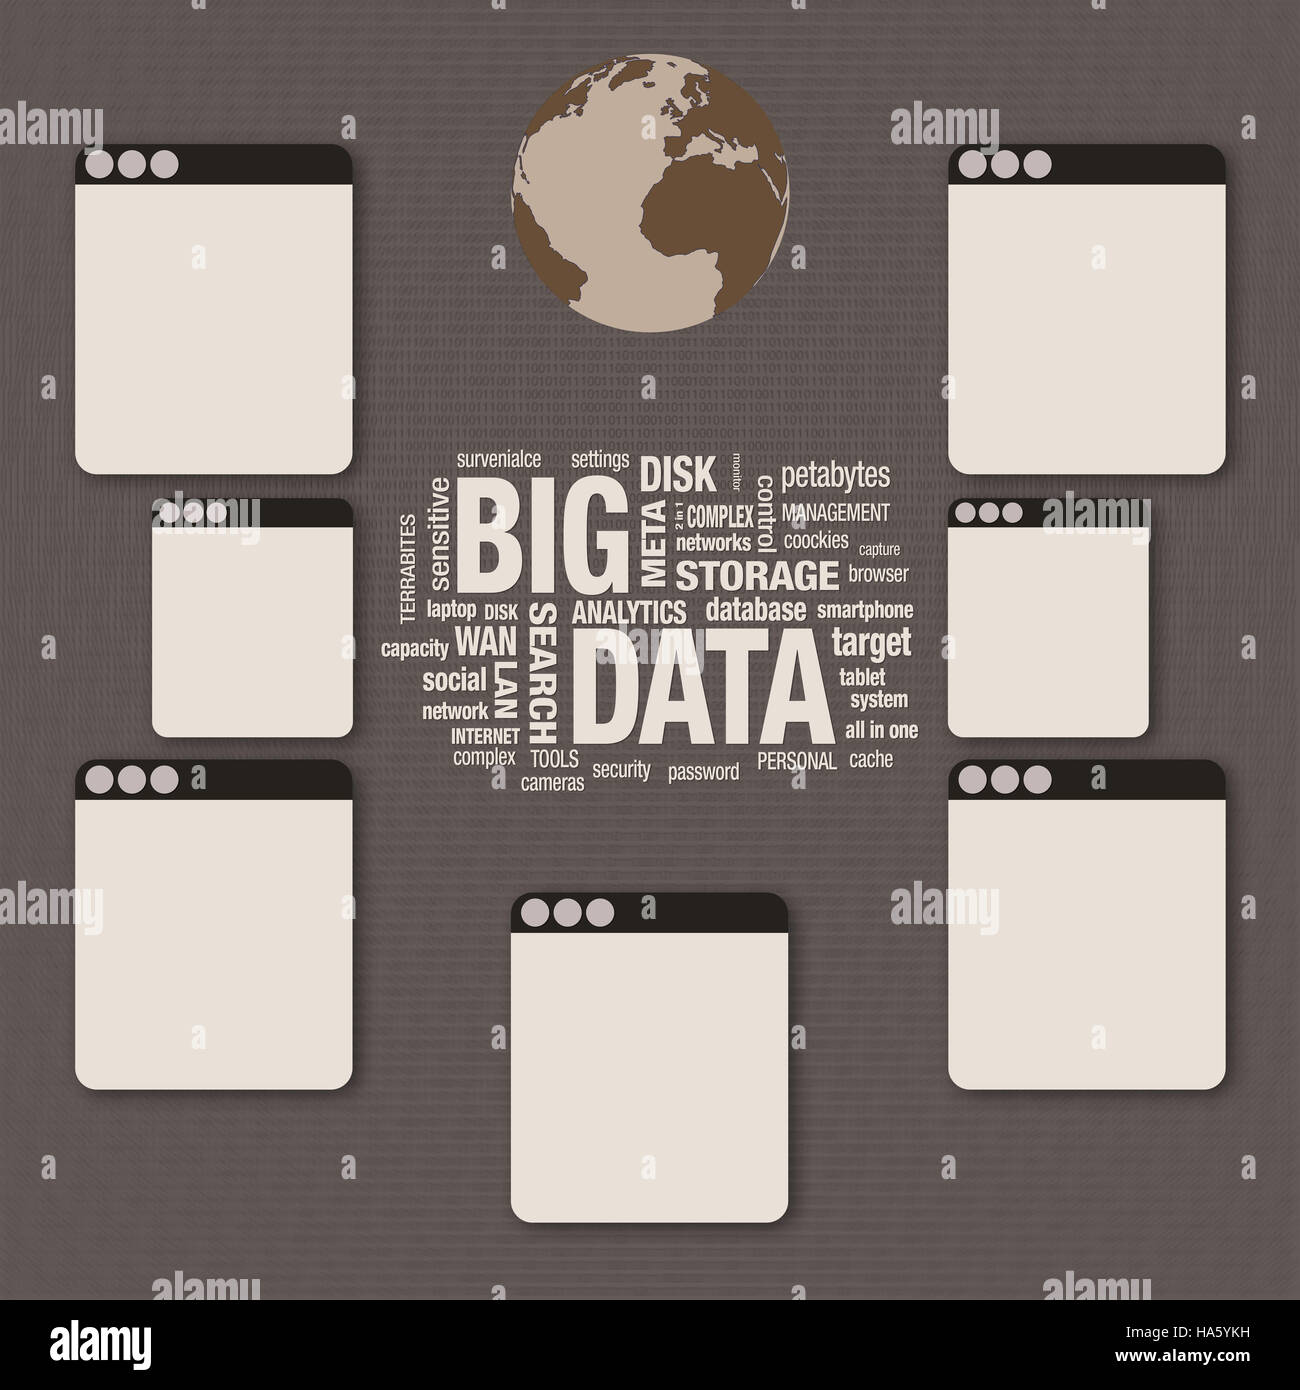 Big Data word cloud collage, technology concept, digital layer effect - Stock Image